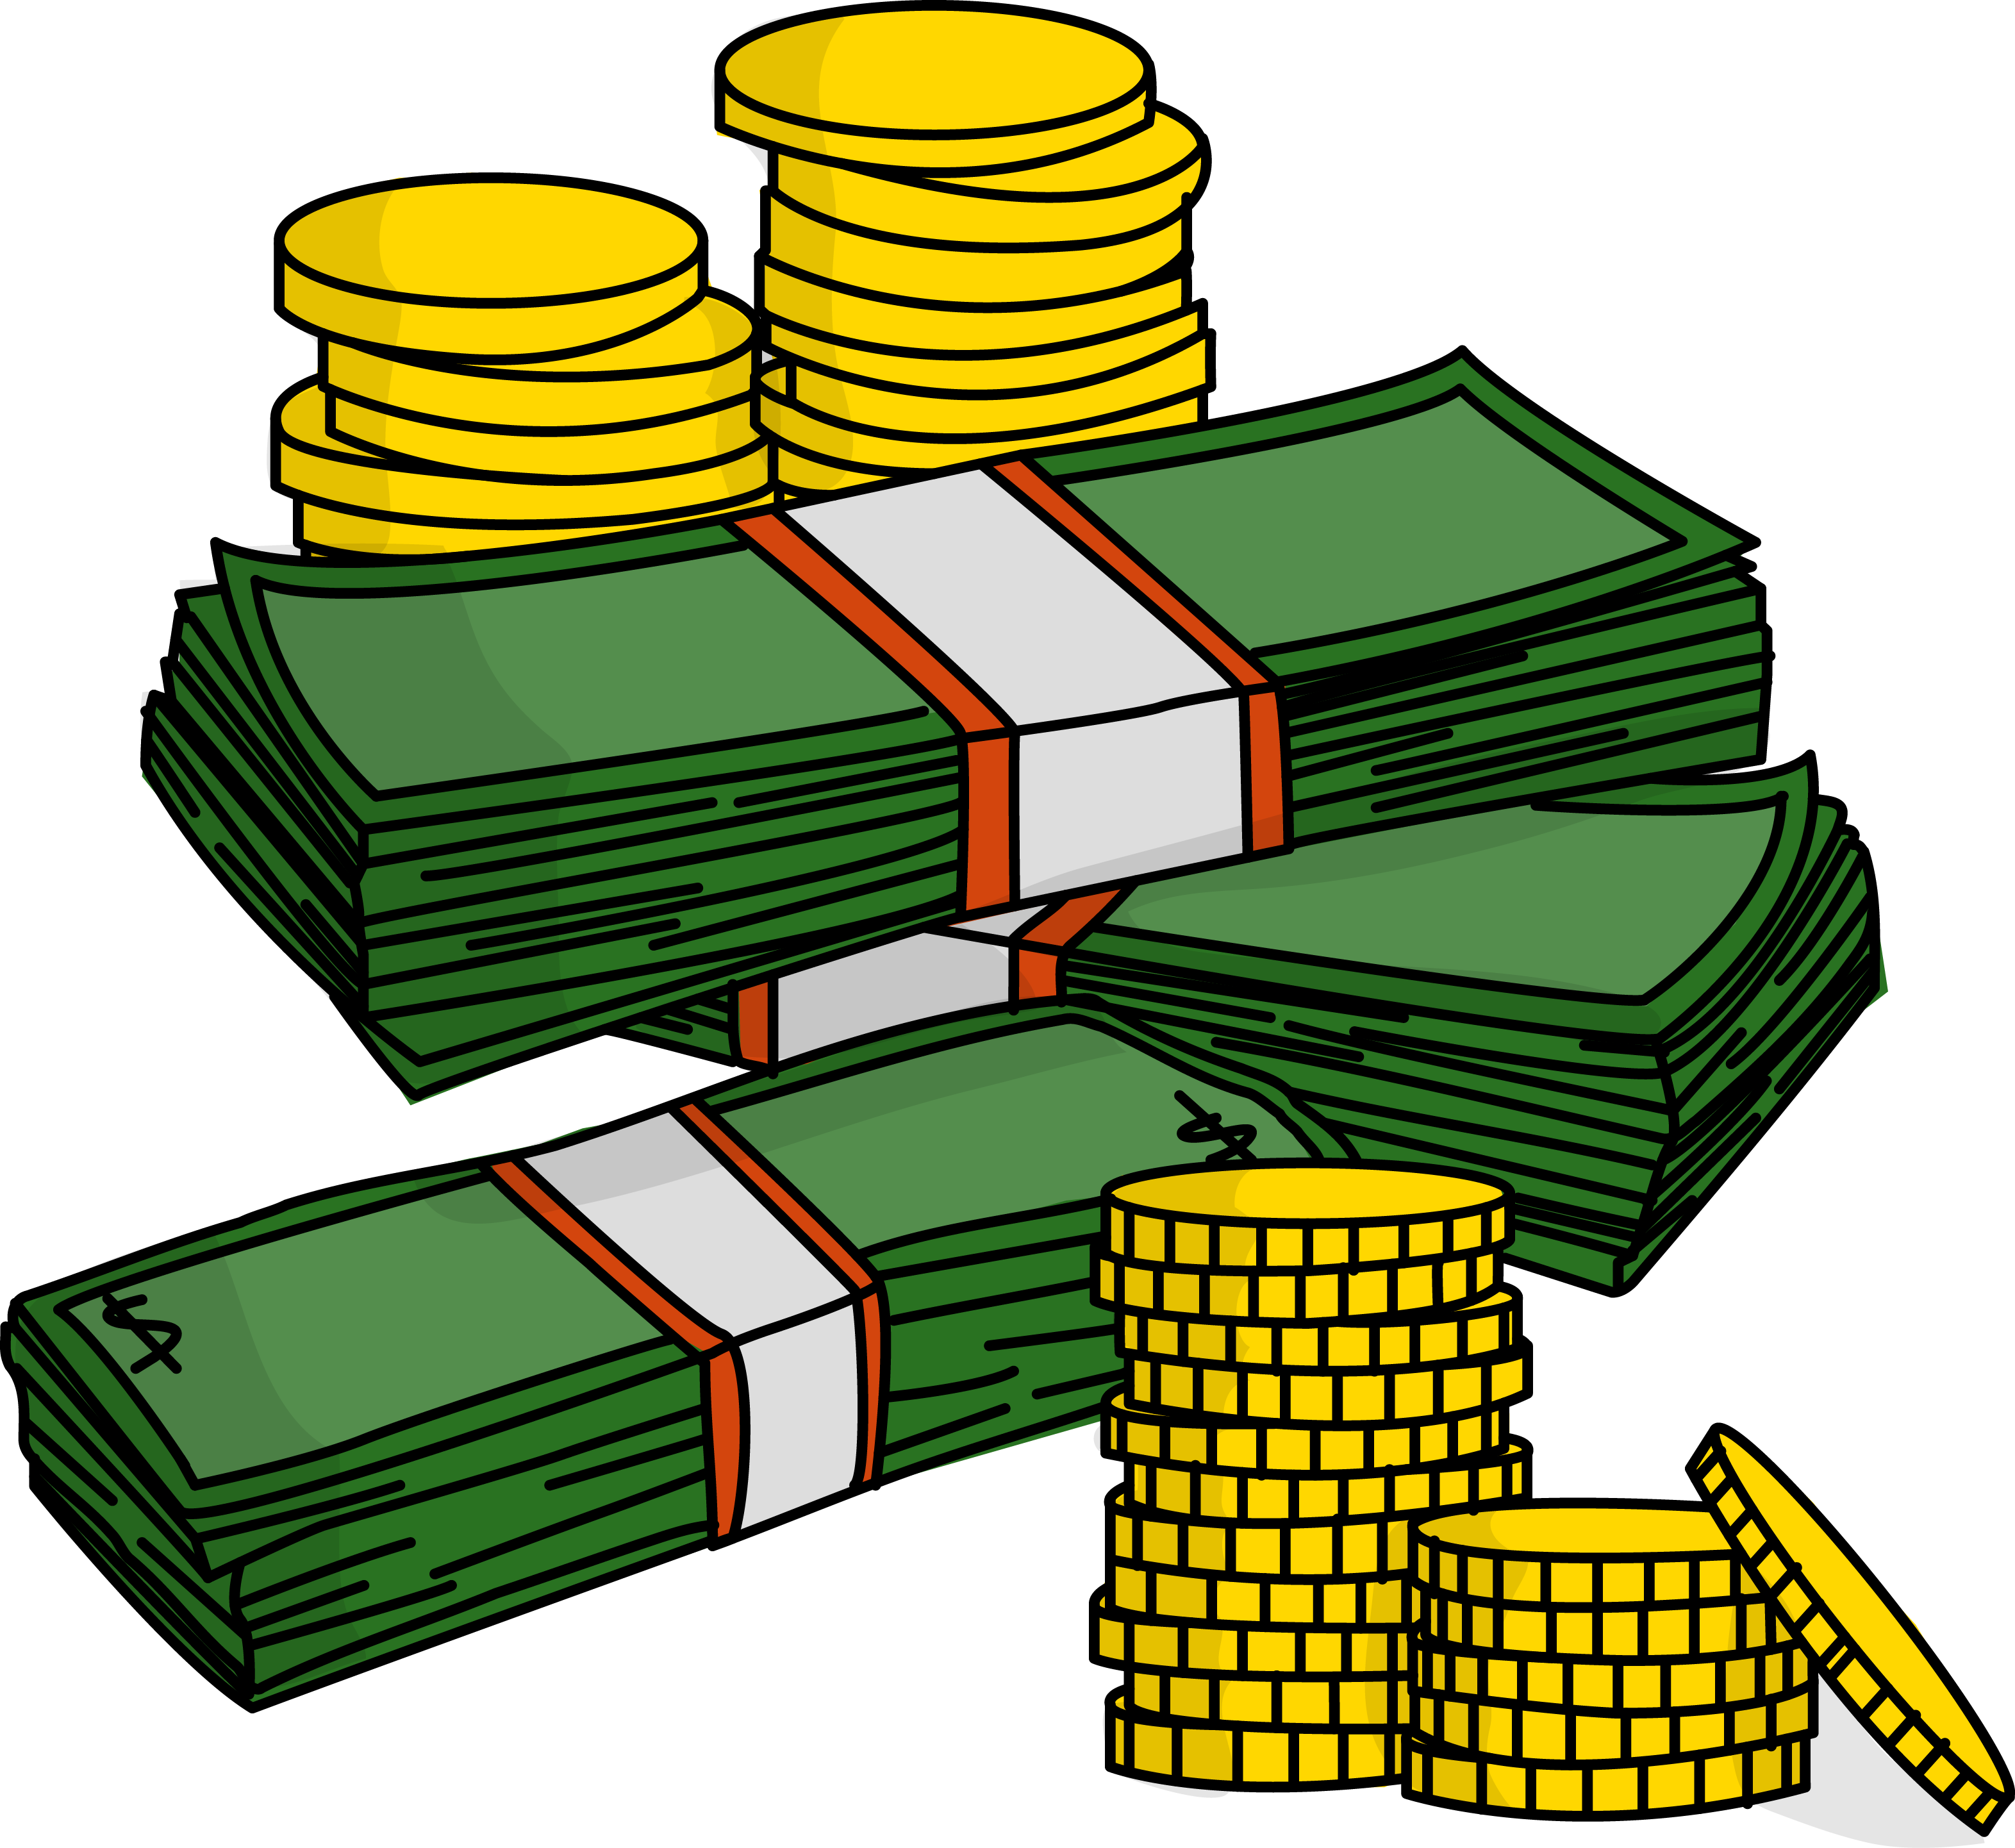 Free Transparent Money Cliparts, Download Free Clip Art.